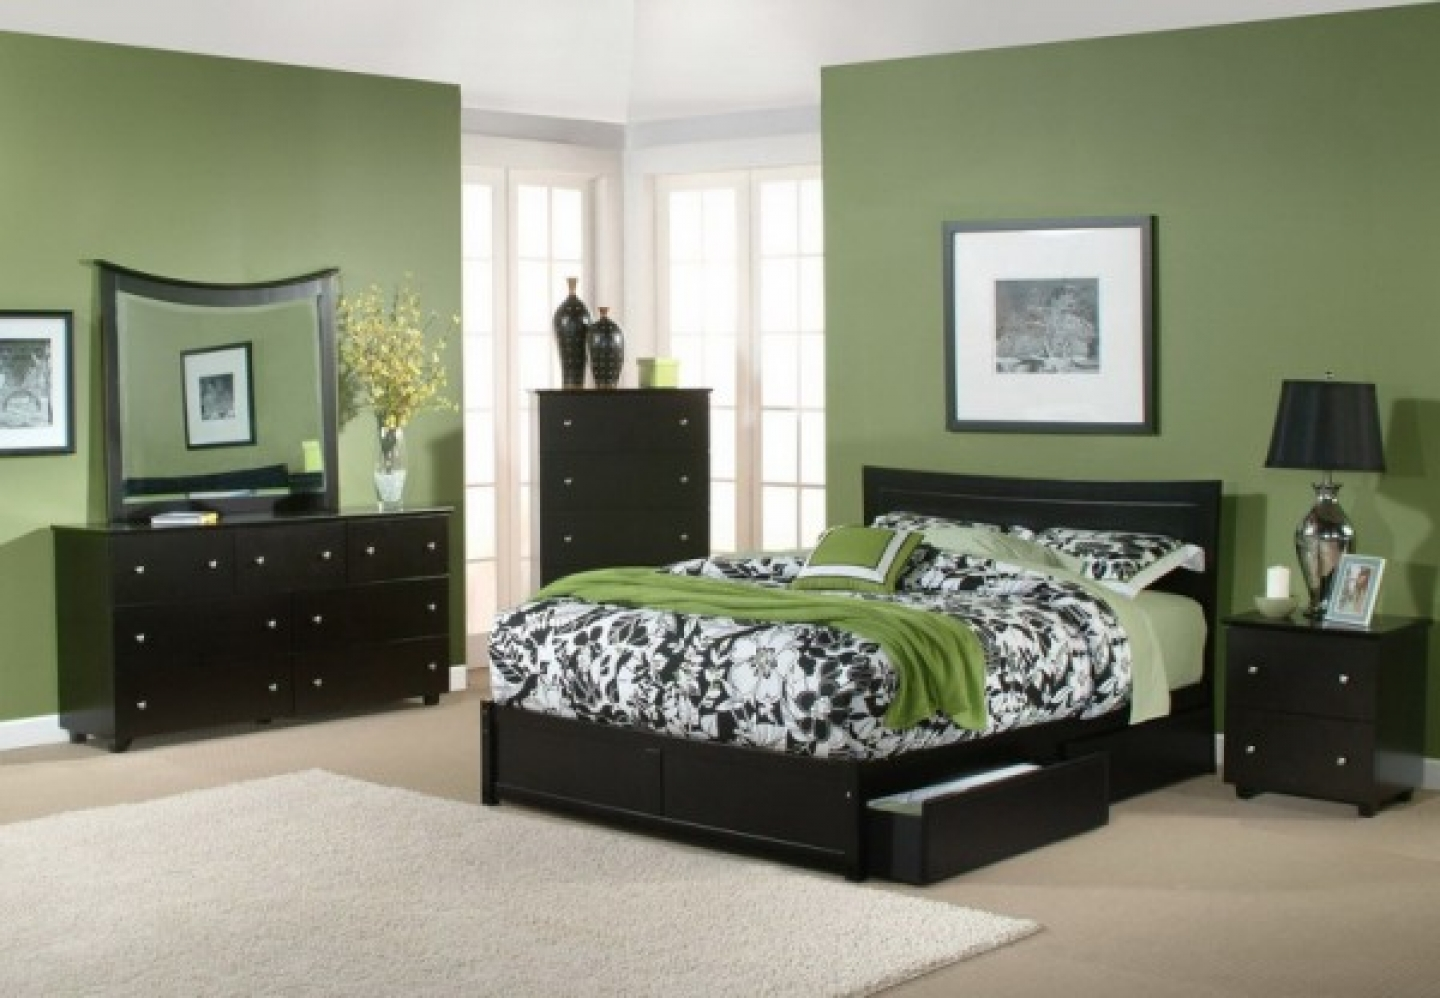 master bedroom color scheme ideas photo - 2